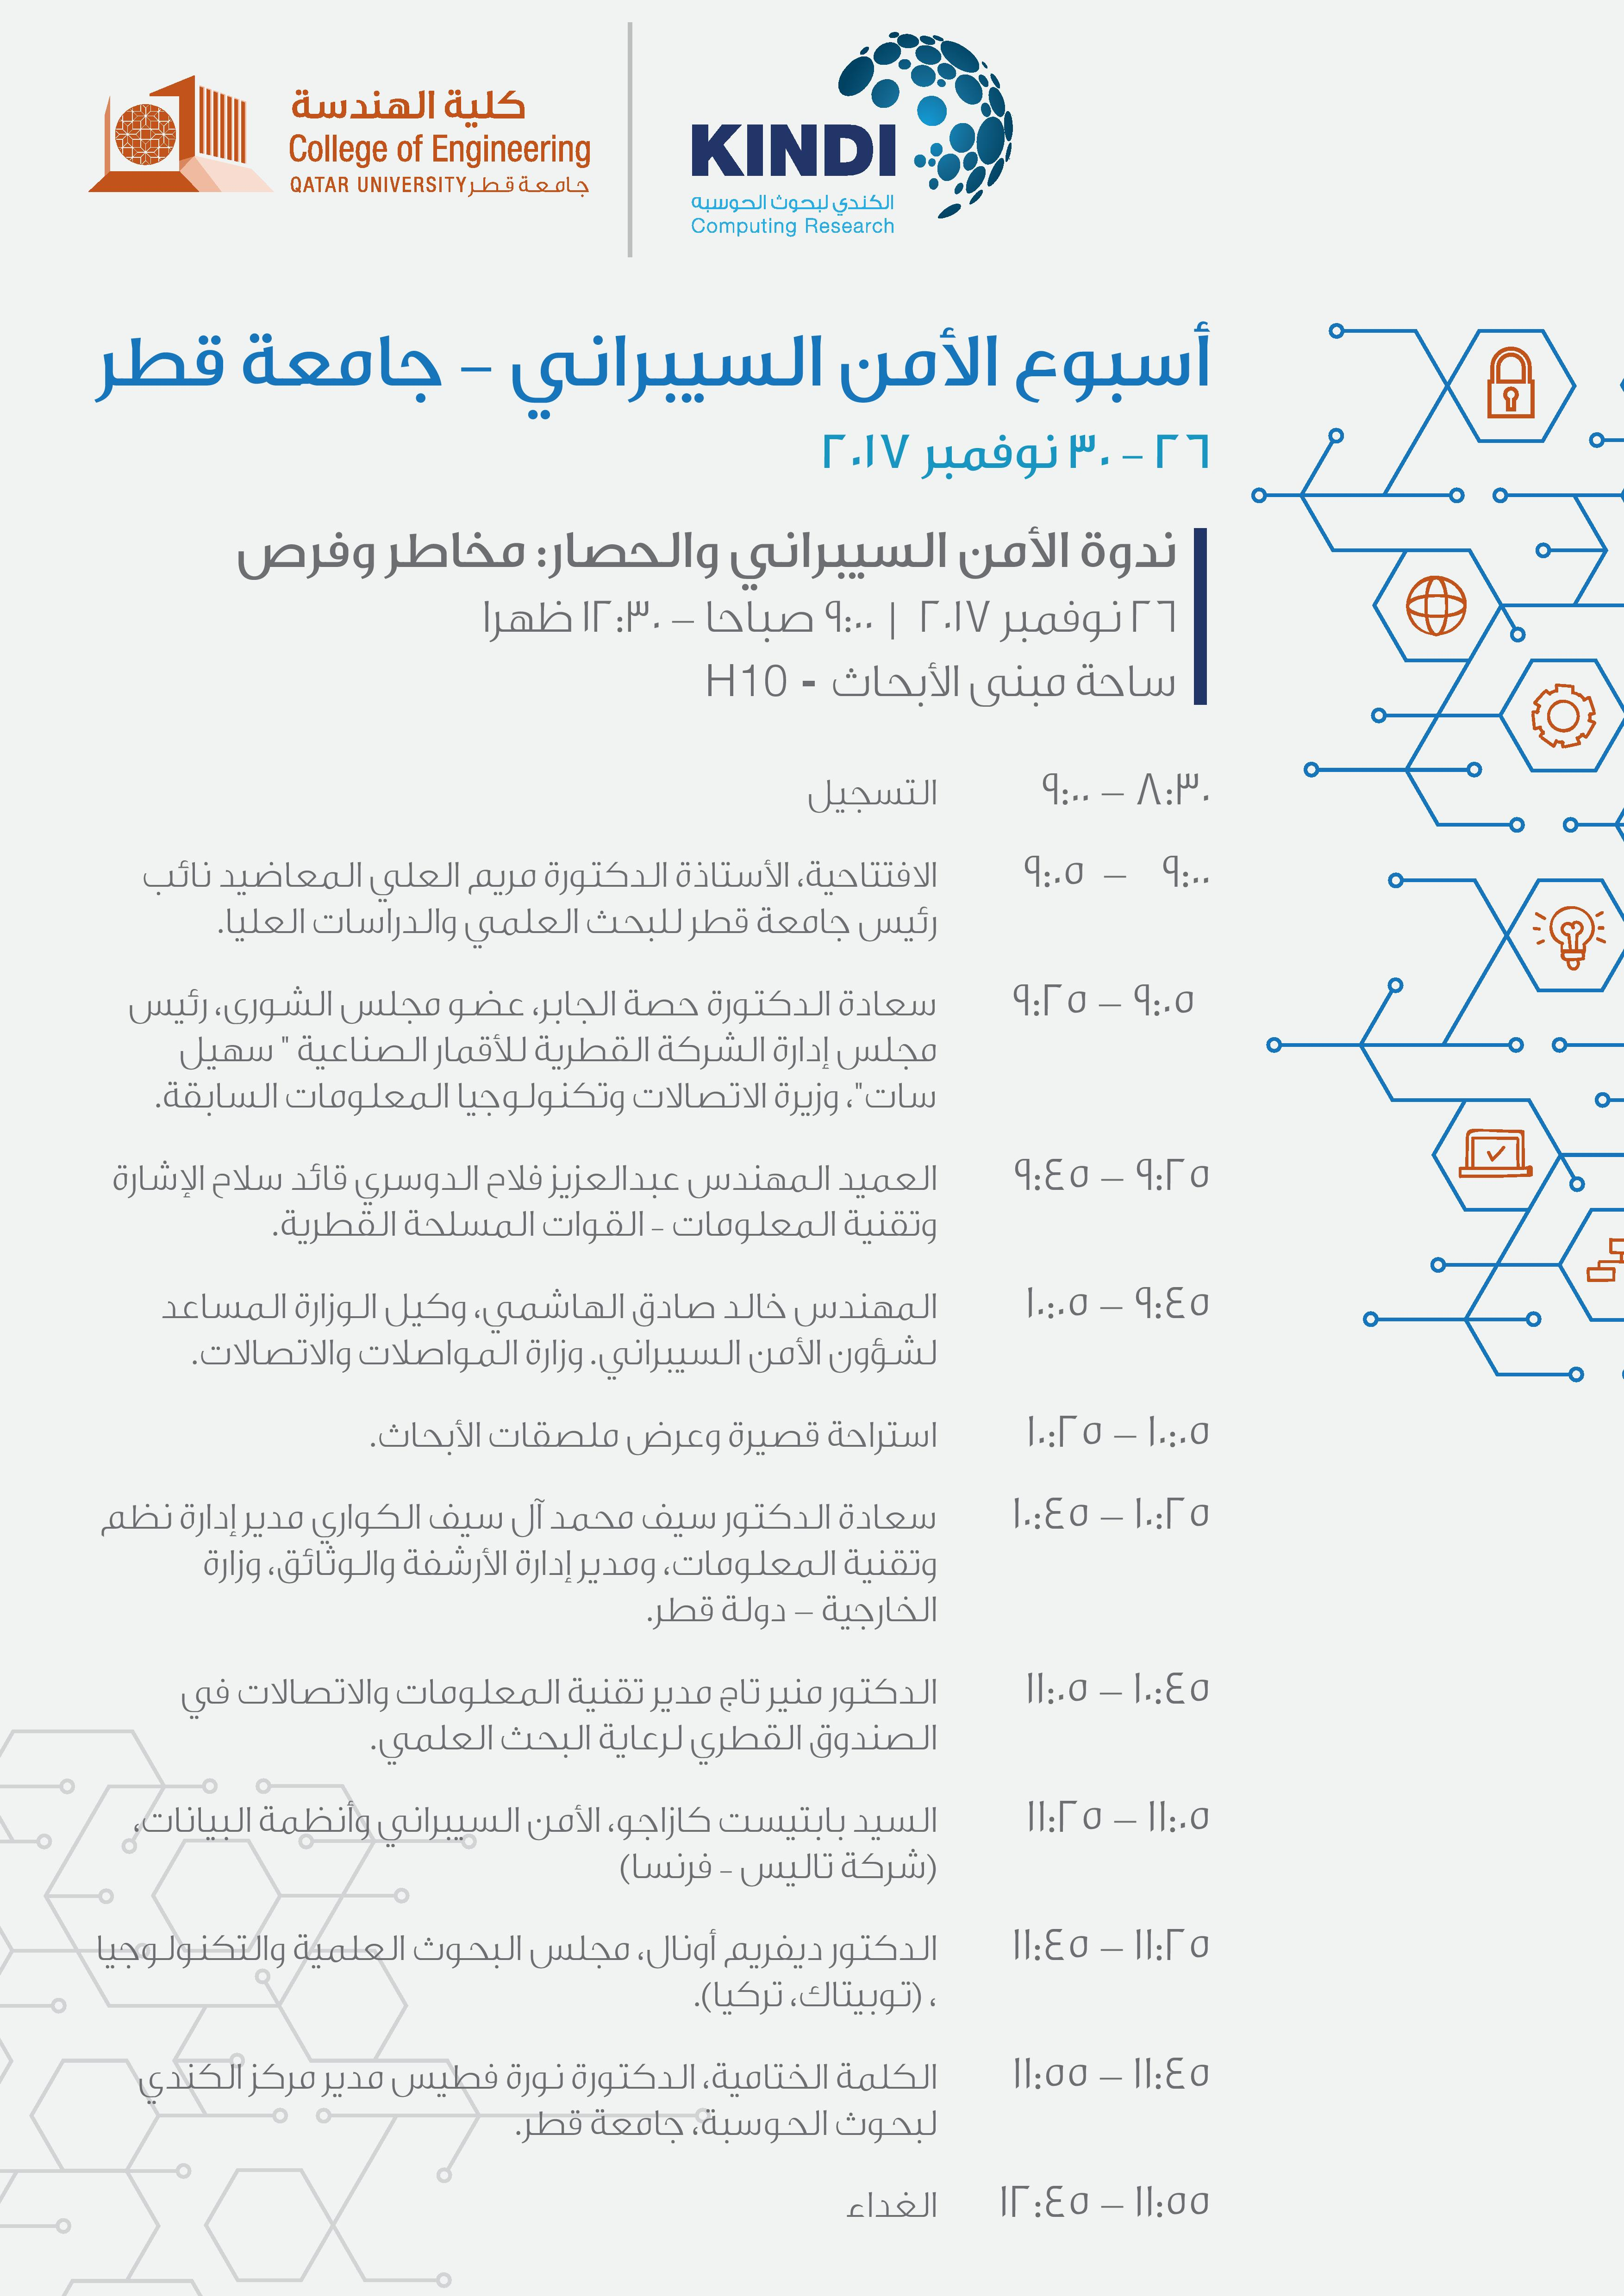 arabic agenda for opening ceremony